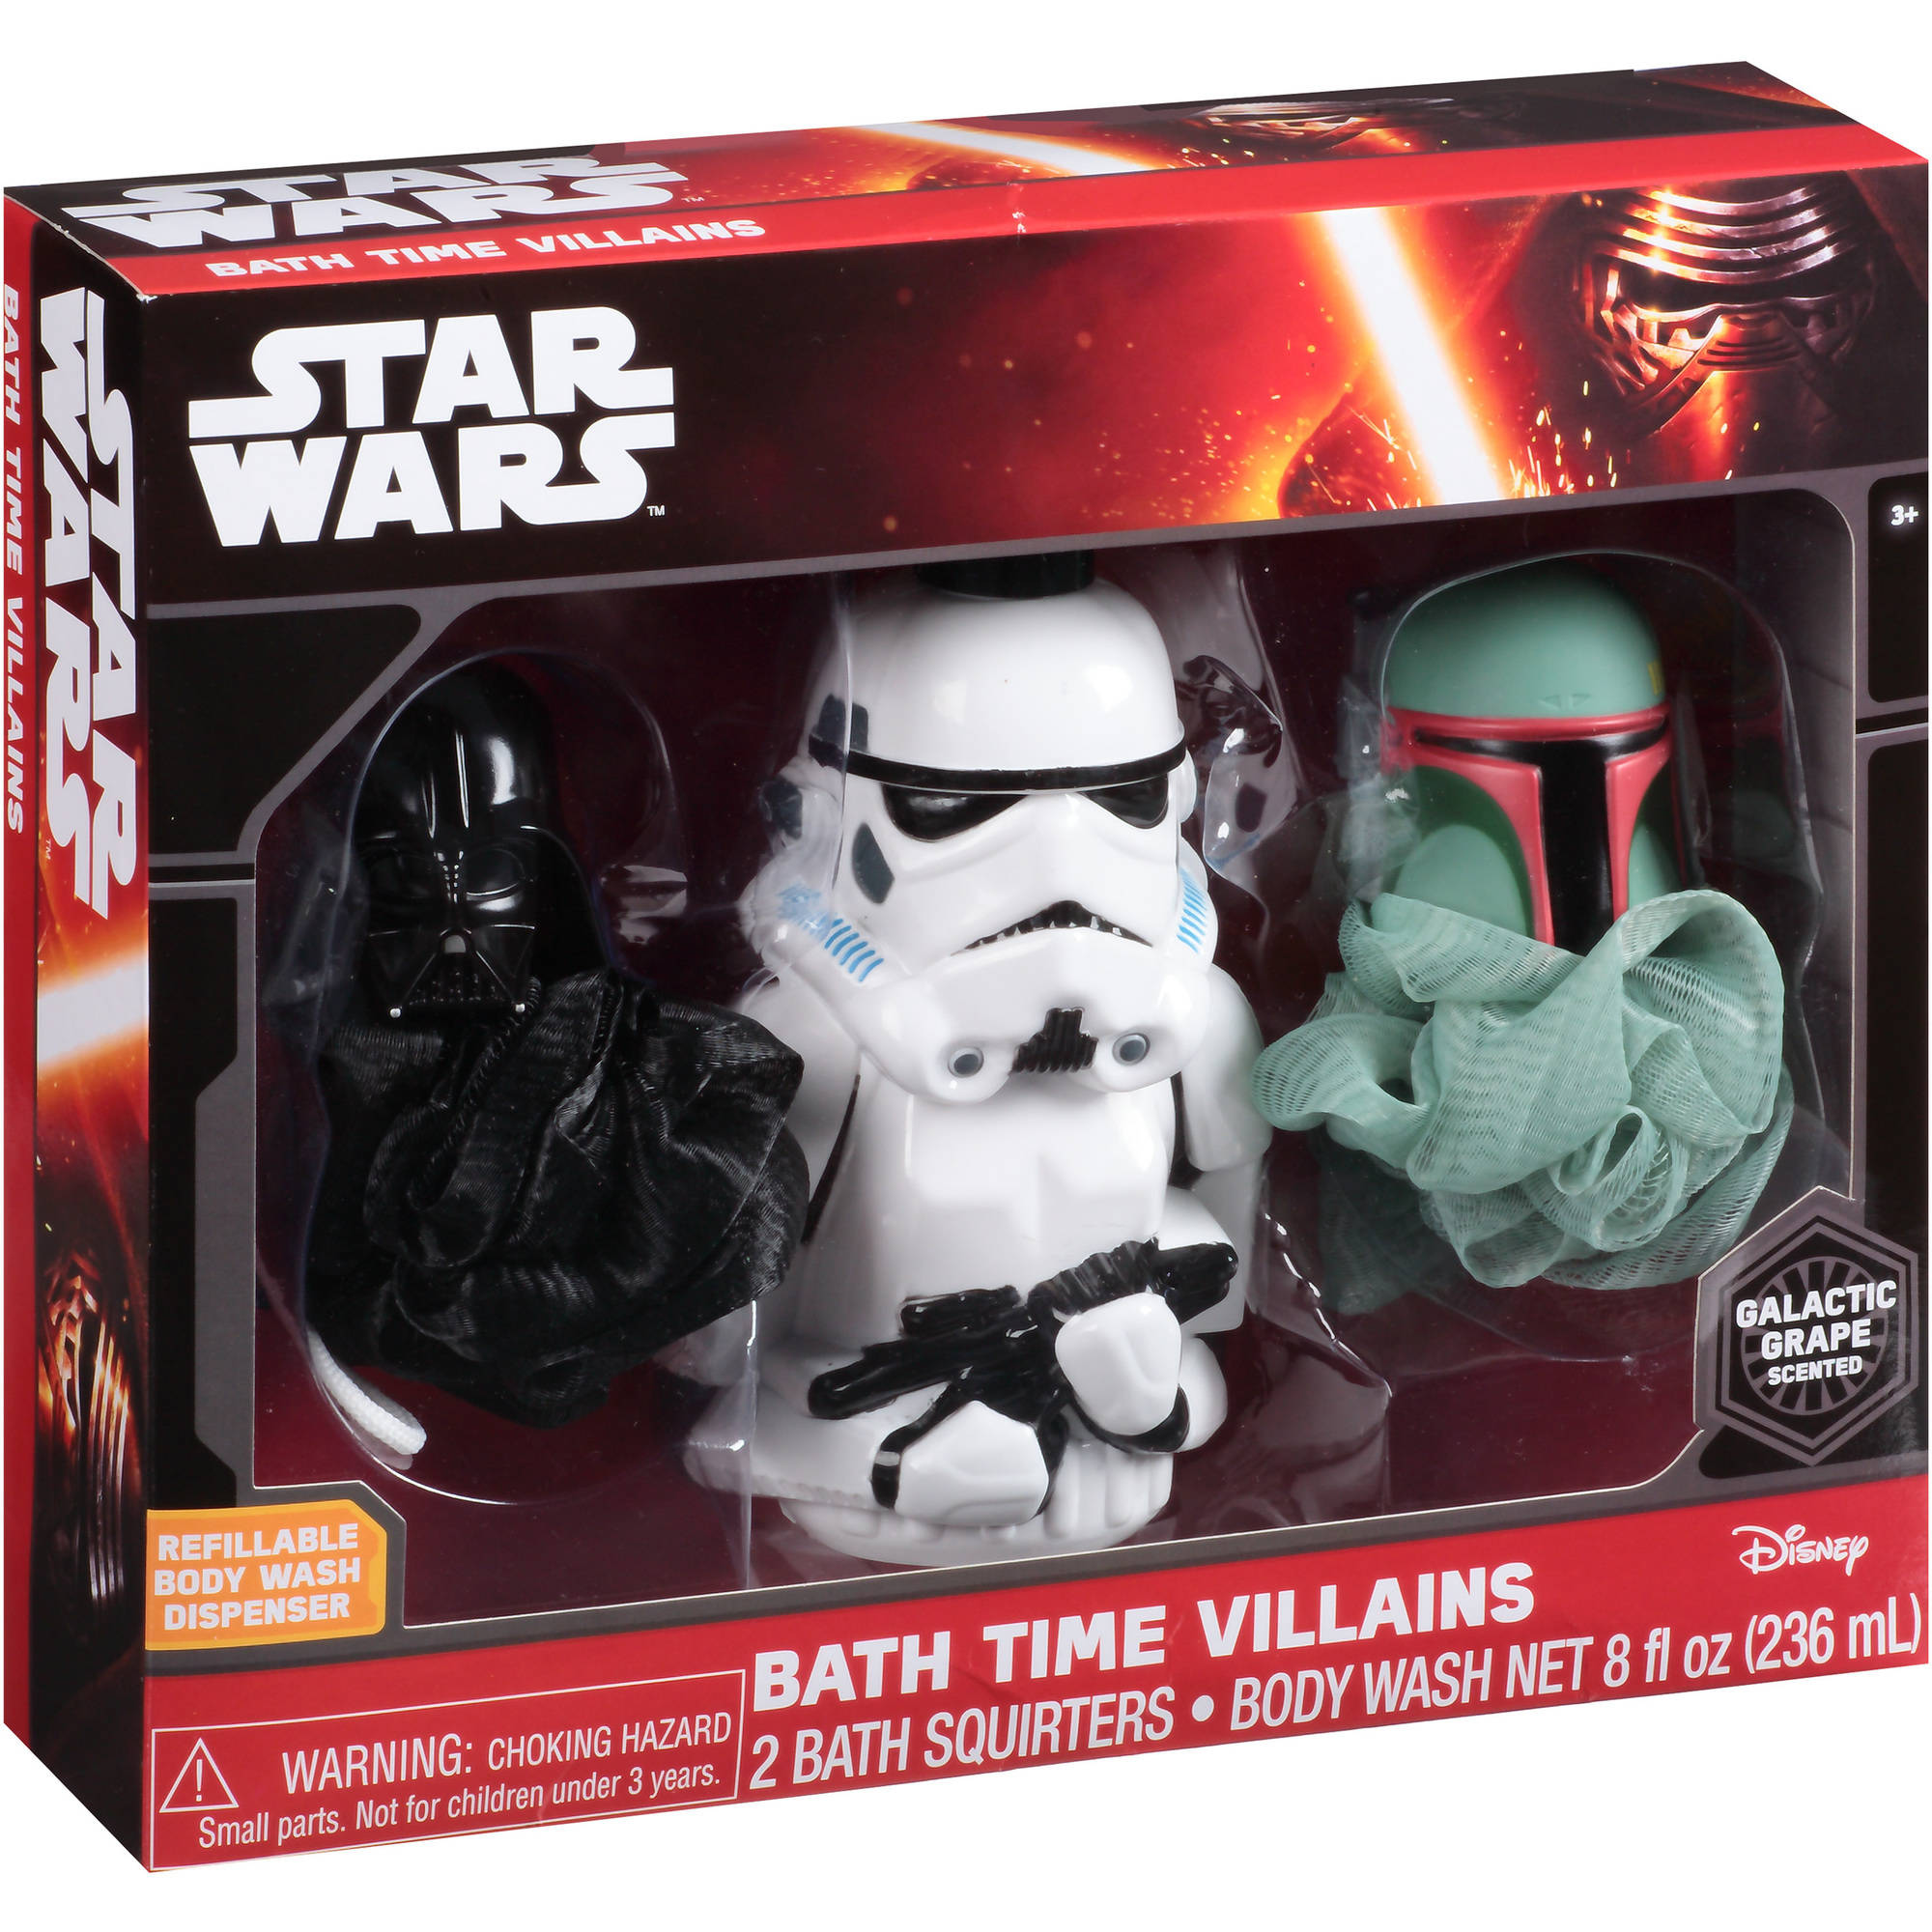 Disney Star Wars Galactic Grape Scented Bath Time Villains Gift Set, 3 pc - Walmart.com